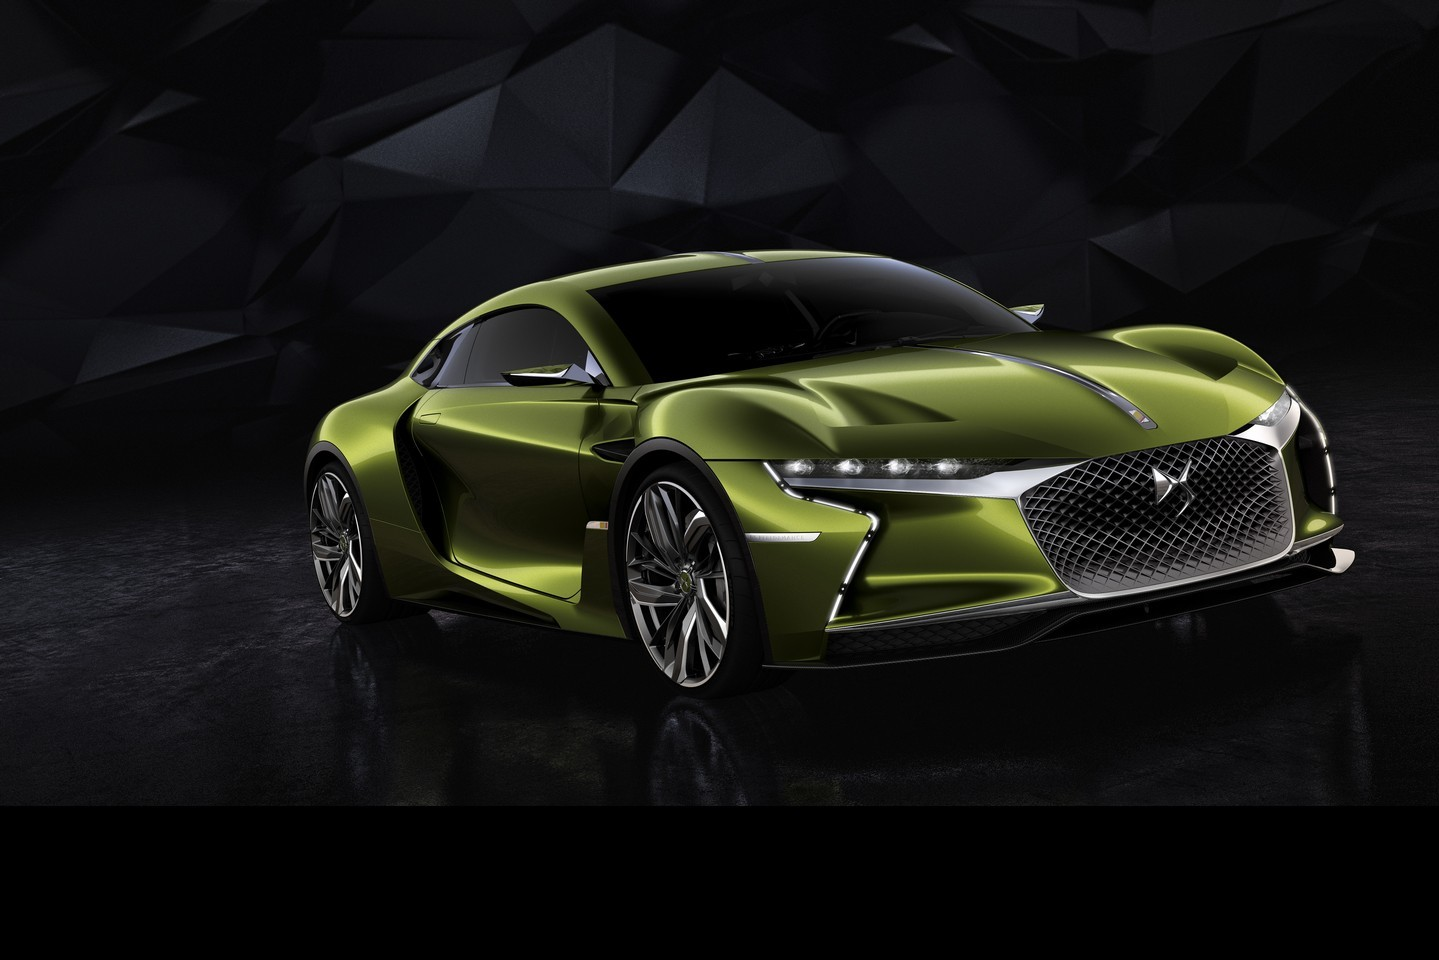 DS E-Tense press image